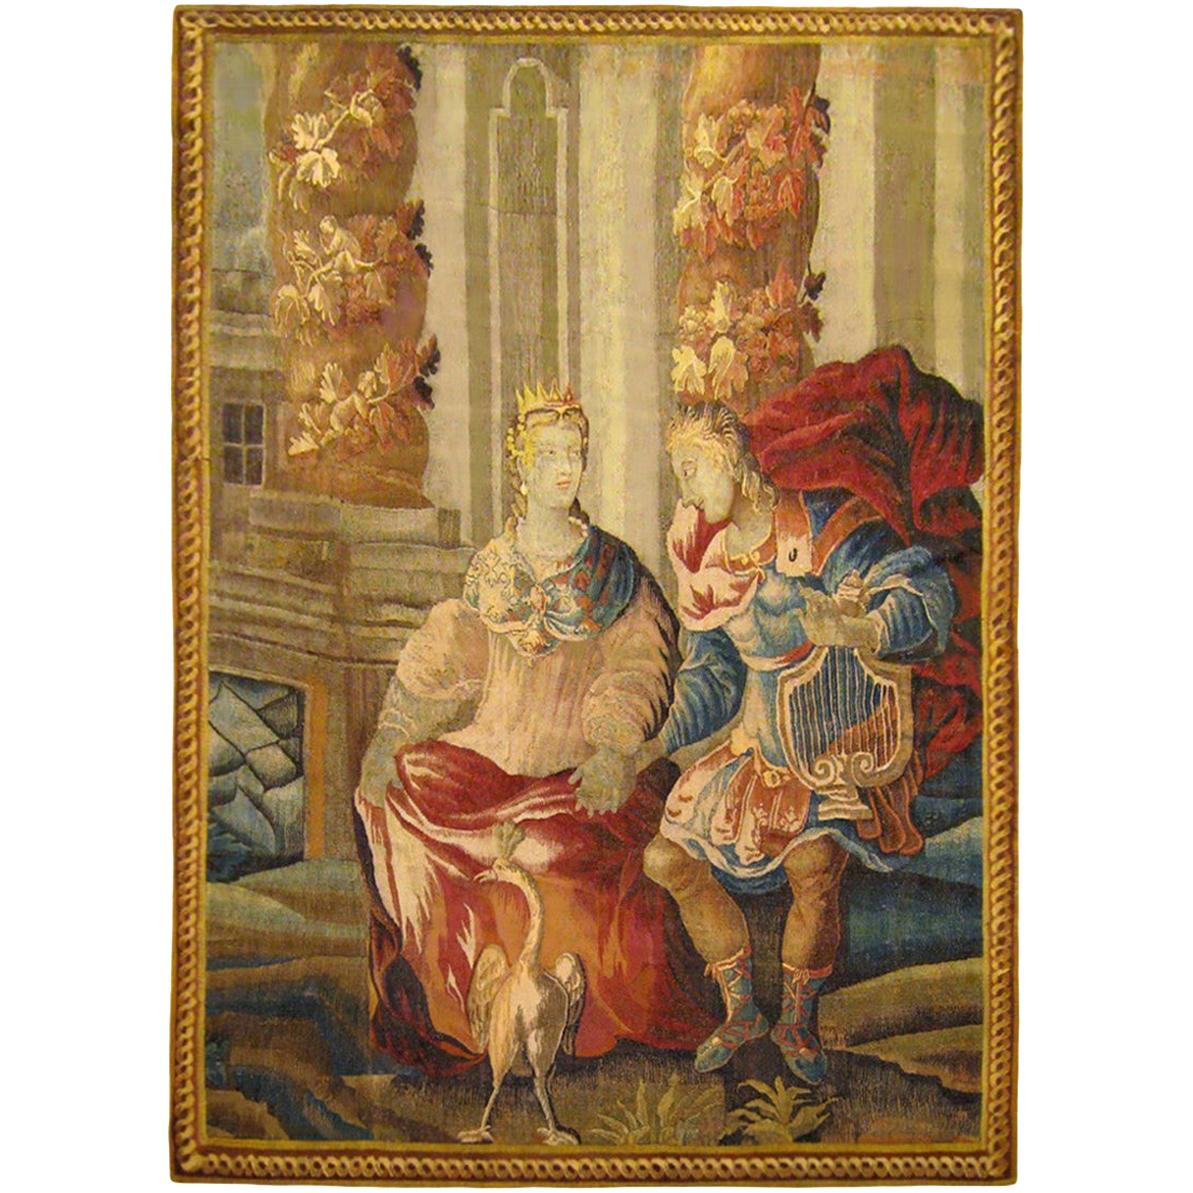 17th Century Flemish Mythological Tapestry, with the Deities Apollo & Artemis